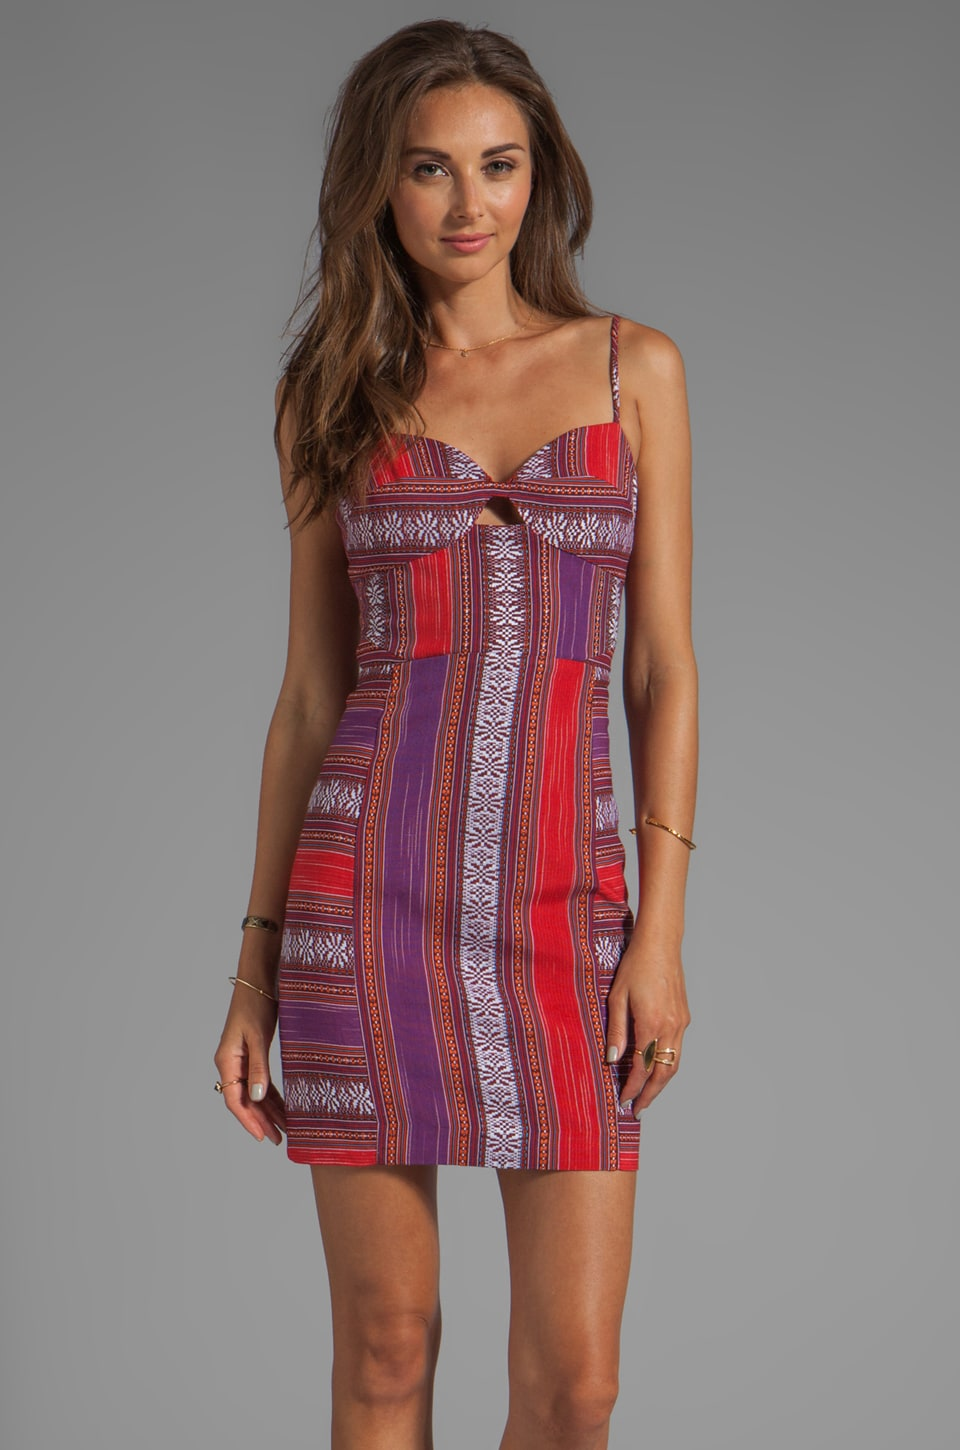 Dolce Vita Amy Dress in Multi Stripe